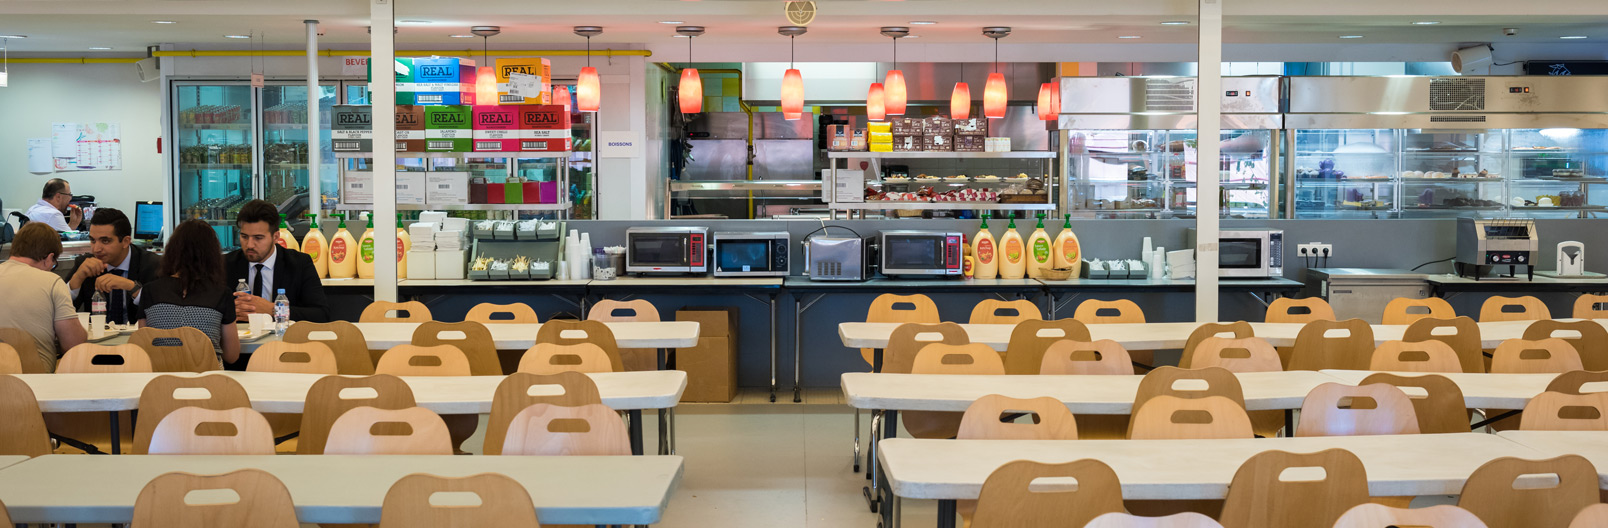 welcome to the cafeteria american school of paris virtual tour and